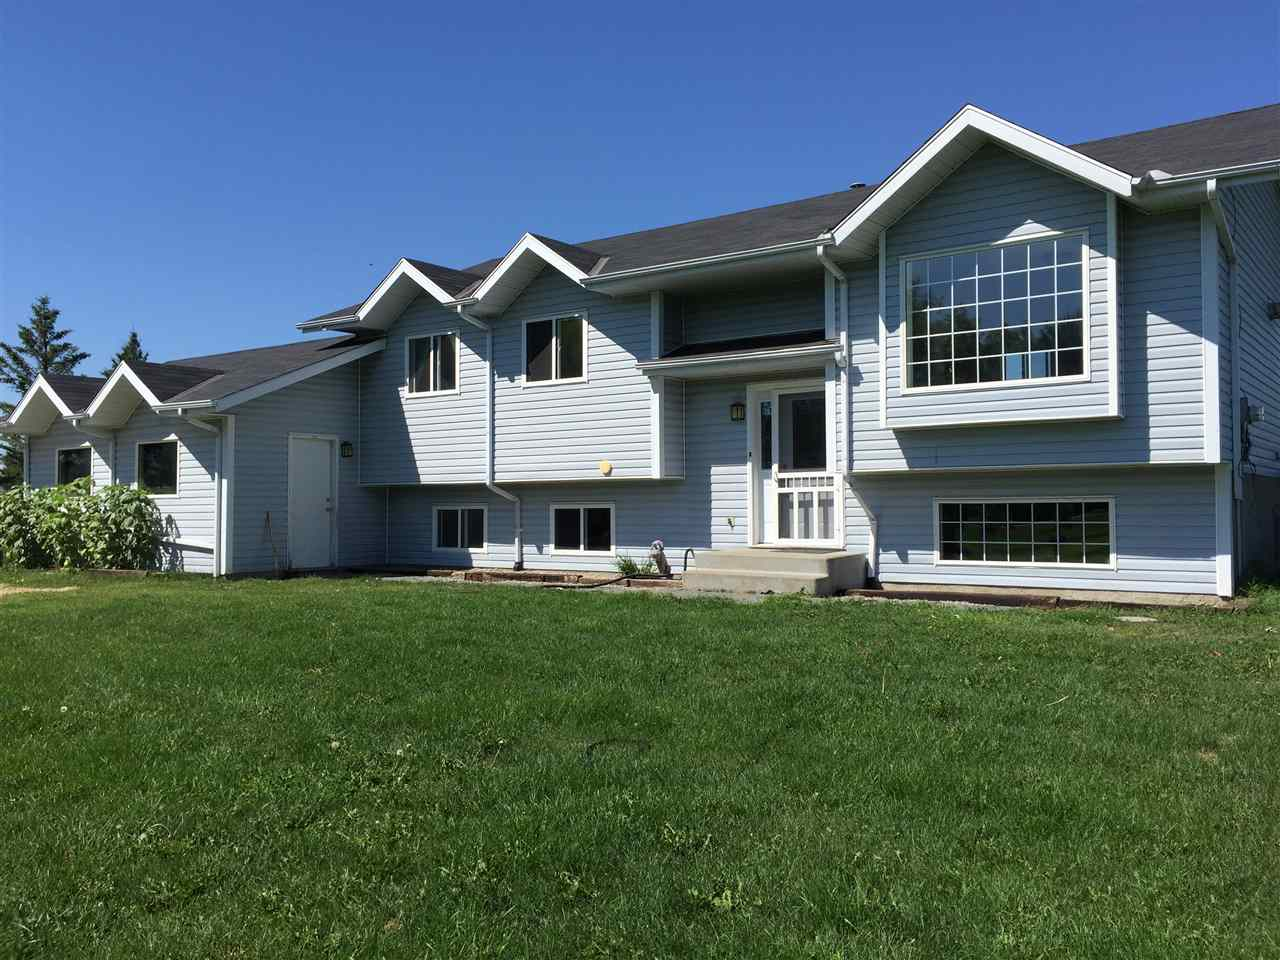 Great family home, great location!  Five minutes from Sherwood Park and five minutes from Ardrossan just off Wye Road in Adam Lily Acres.  1077 sq foot bilevel on 3.2 acres fenced and cross fenced for horses with shelter.  With a total of 4 bedrooms plus a den and 3 bathrooms, this provides great space for a family.  On the main floor you have newer hardwood floors with nice size kitchen, living room and eating area.  Patio doors lead you out to the large deck.  Also upstairs is the master bedroom with 4 piece ensuite including a jetted tub!  Another full bath and 2 more bedrooms complete the upper floor.  The basement is completely finished with laminate flooring and large windows, a large rec room, one bedroom, a bathroom, an office and laundry.  Such a great floor plan and good use of space.  And the shingles are only a year old.  Move in ready!